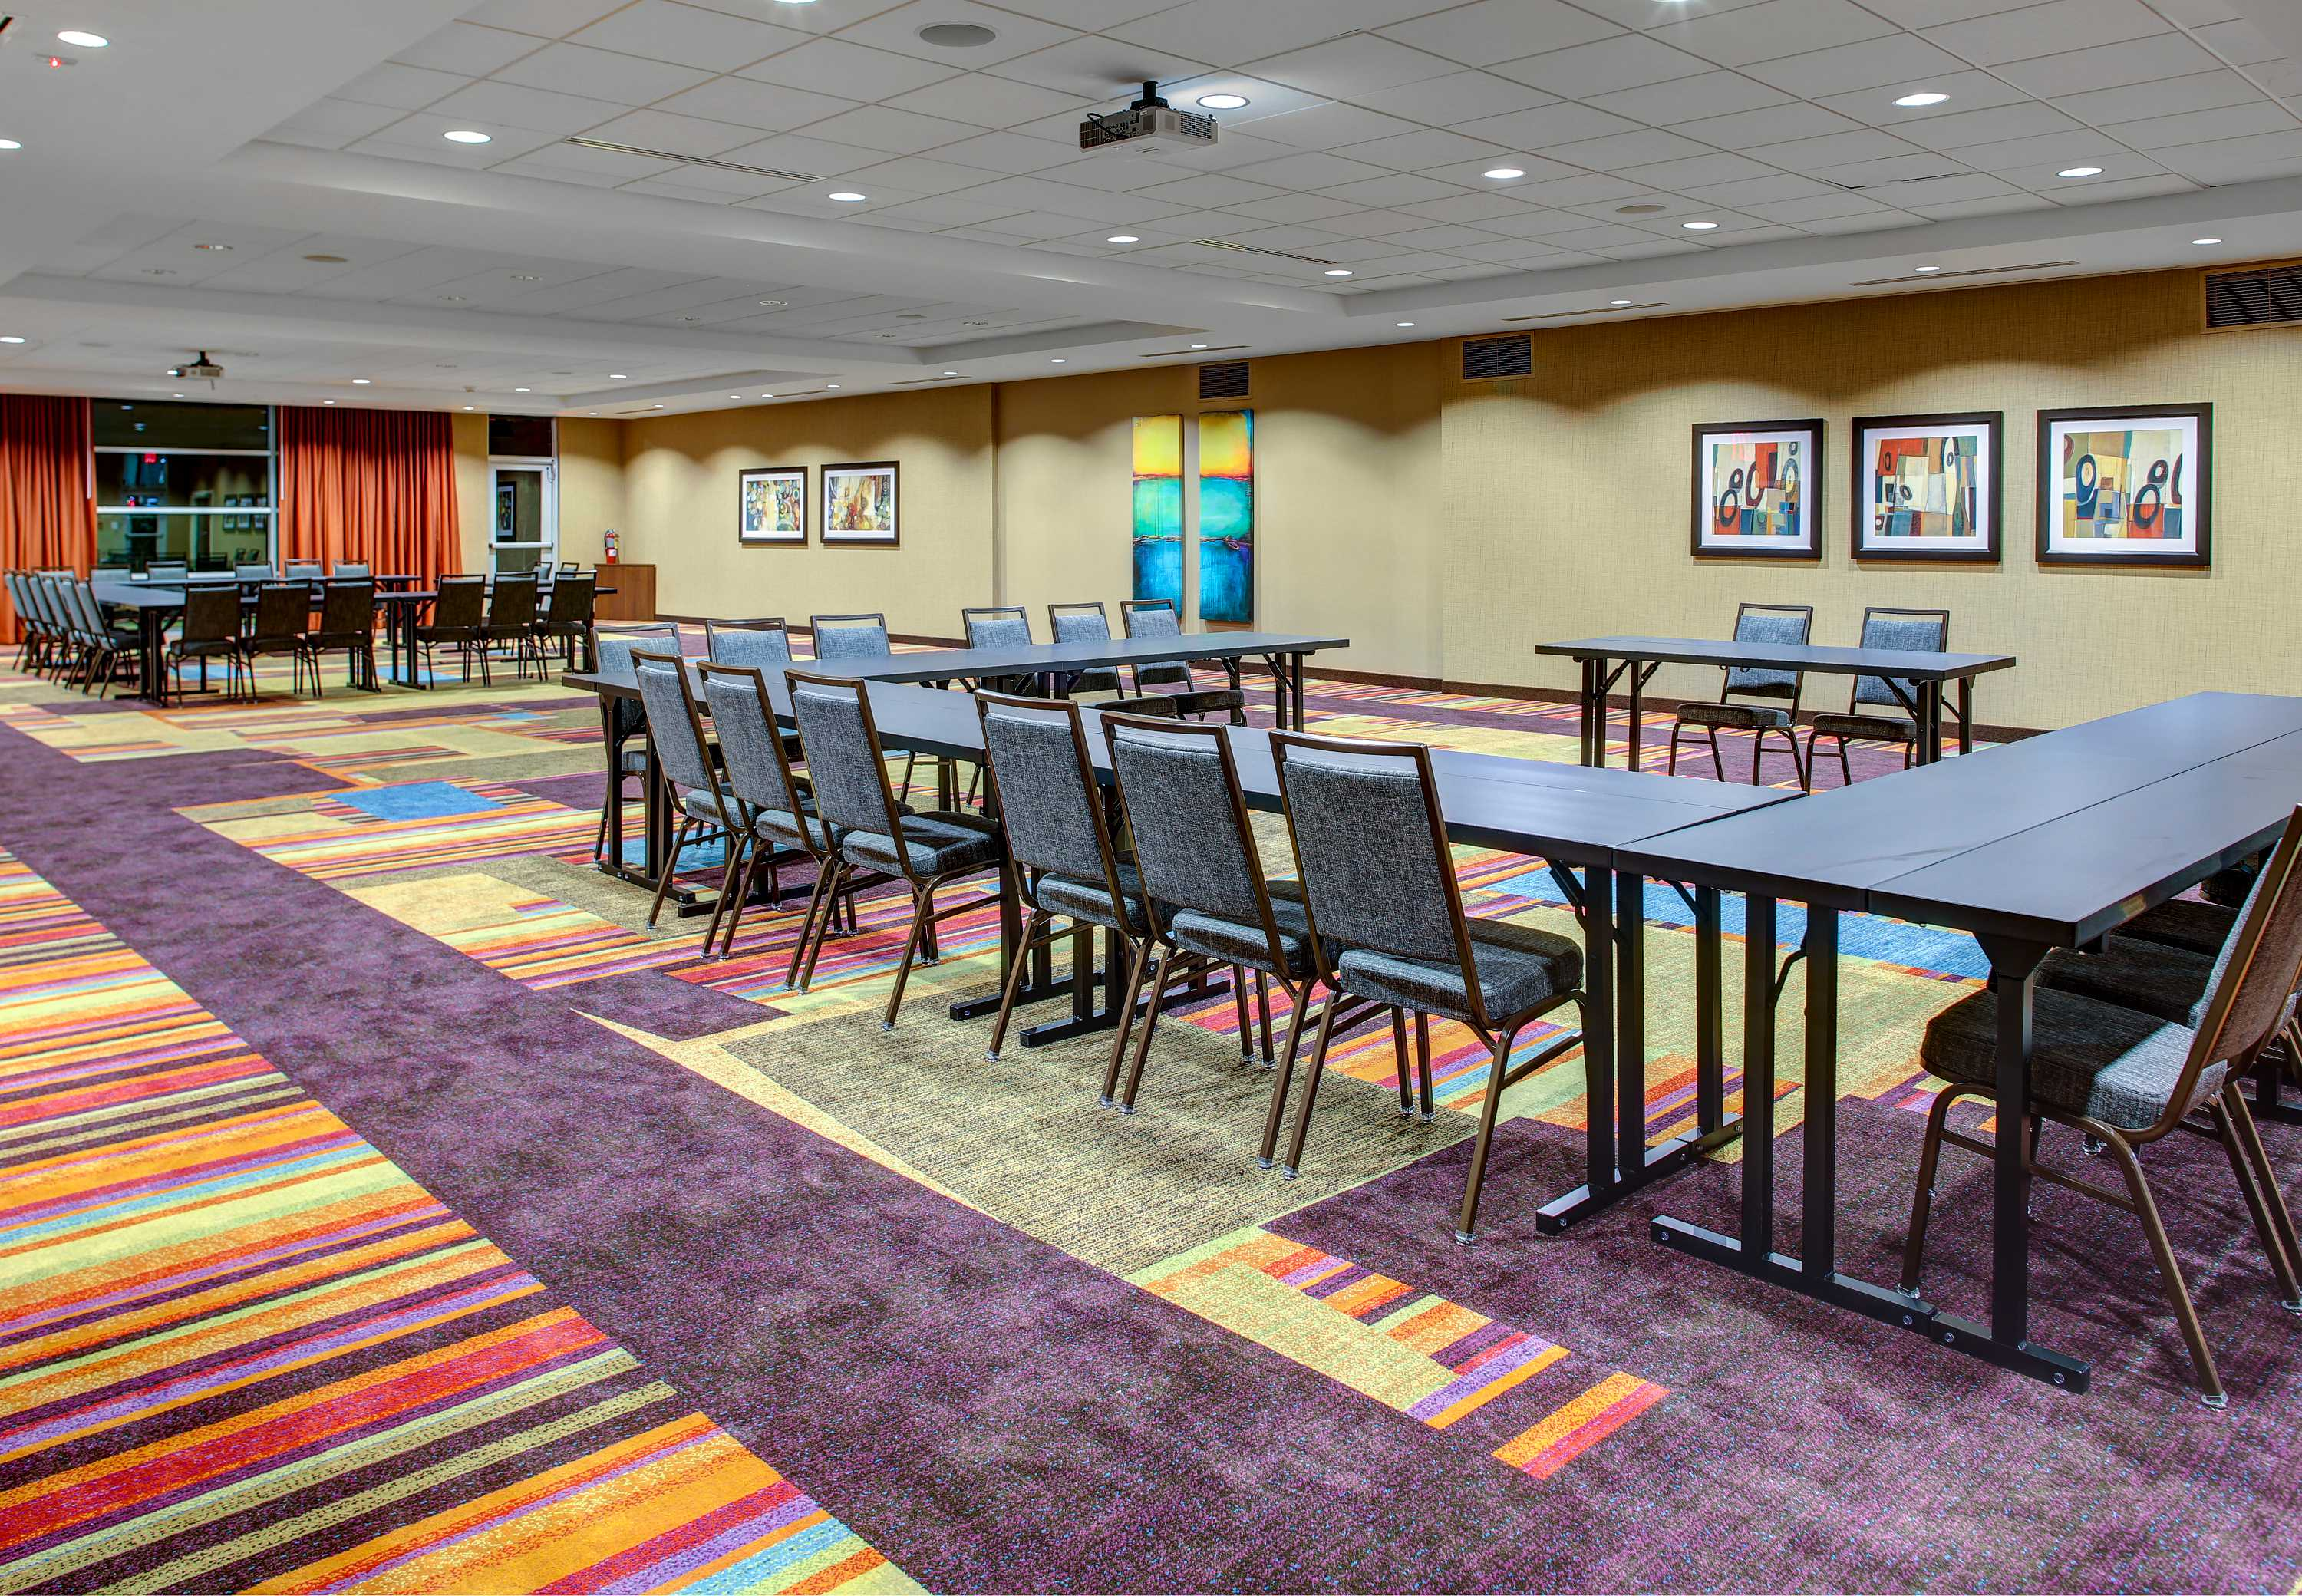 Fairfield Inn & Suites by Marriott Atlanta Stockbridge image 17